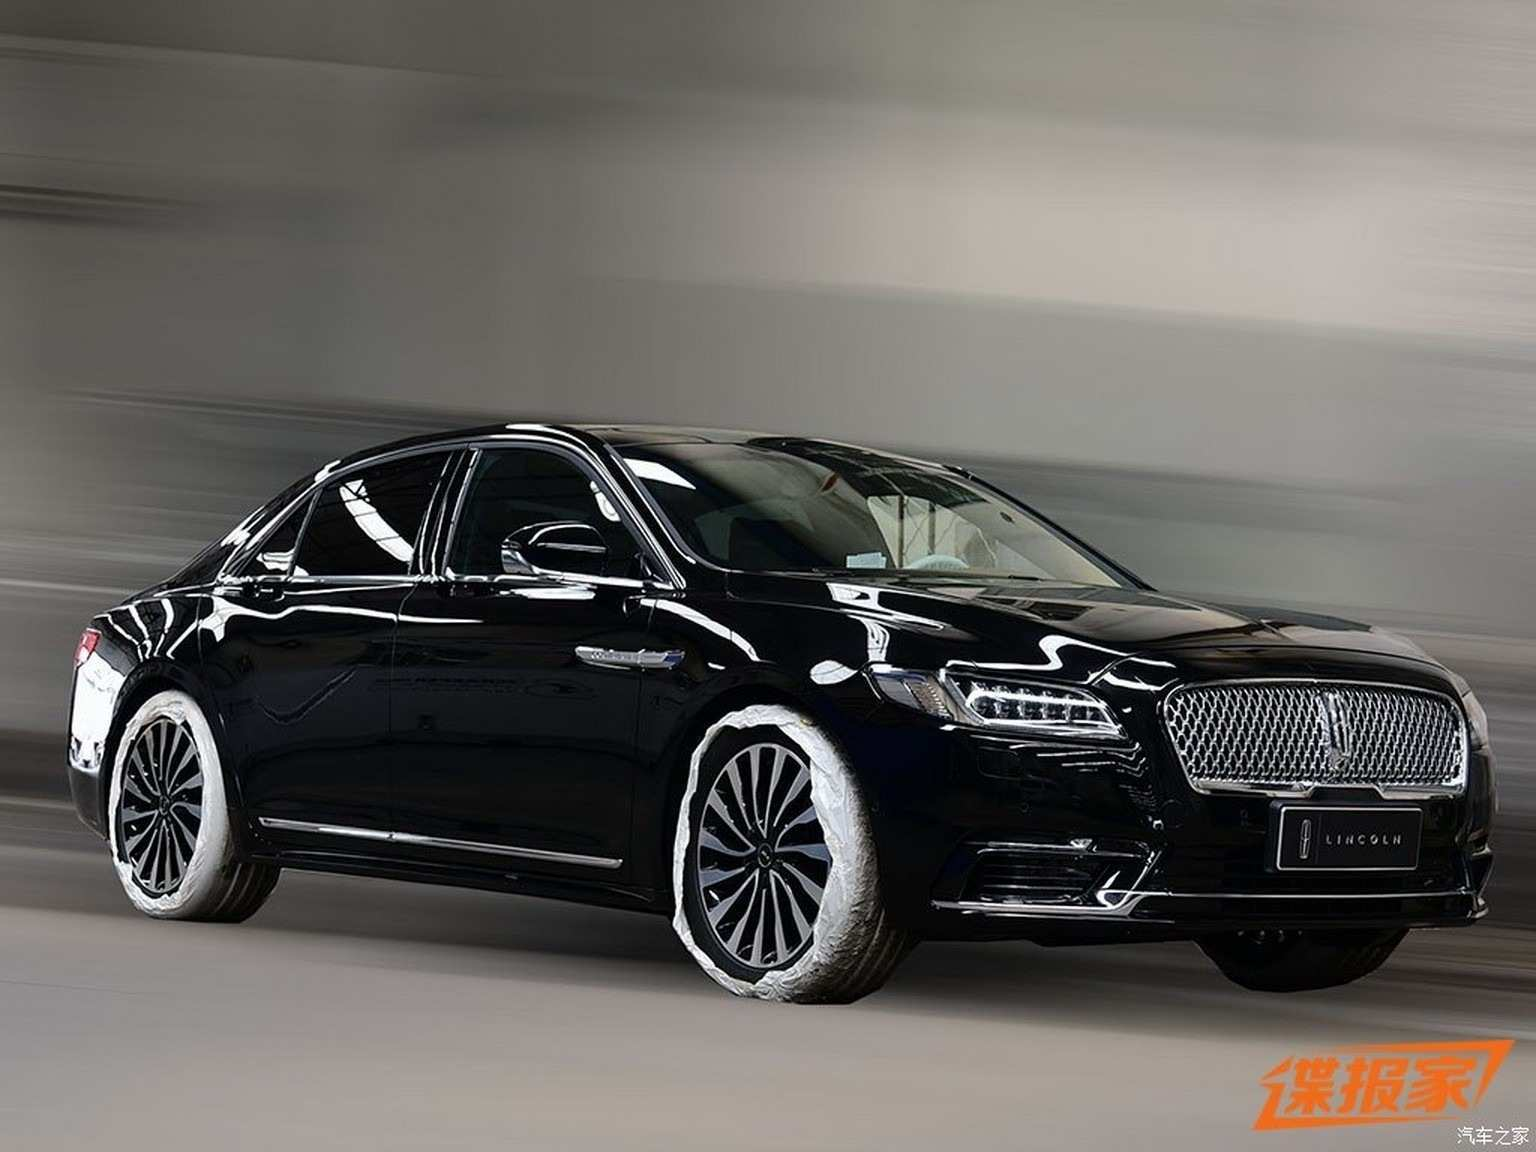 53 The Best 2019 Lincoln Mkx At Beijing Motor Show New Model And Performance